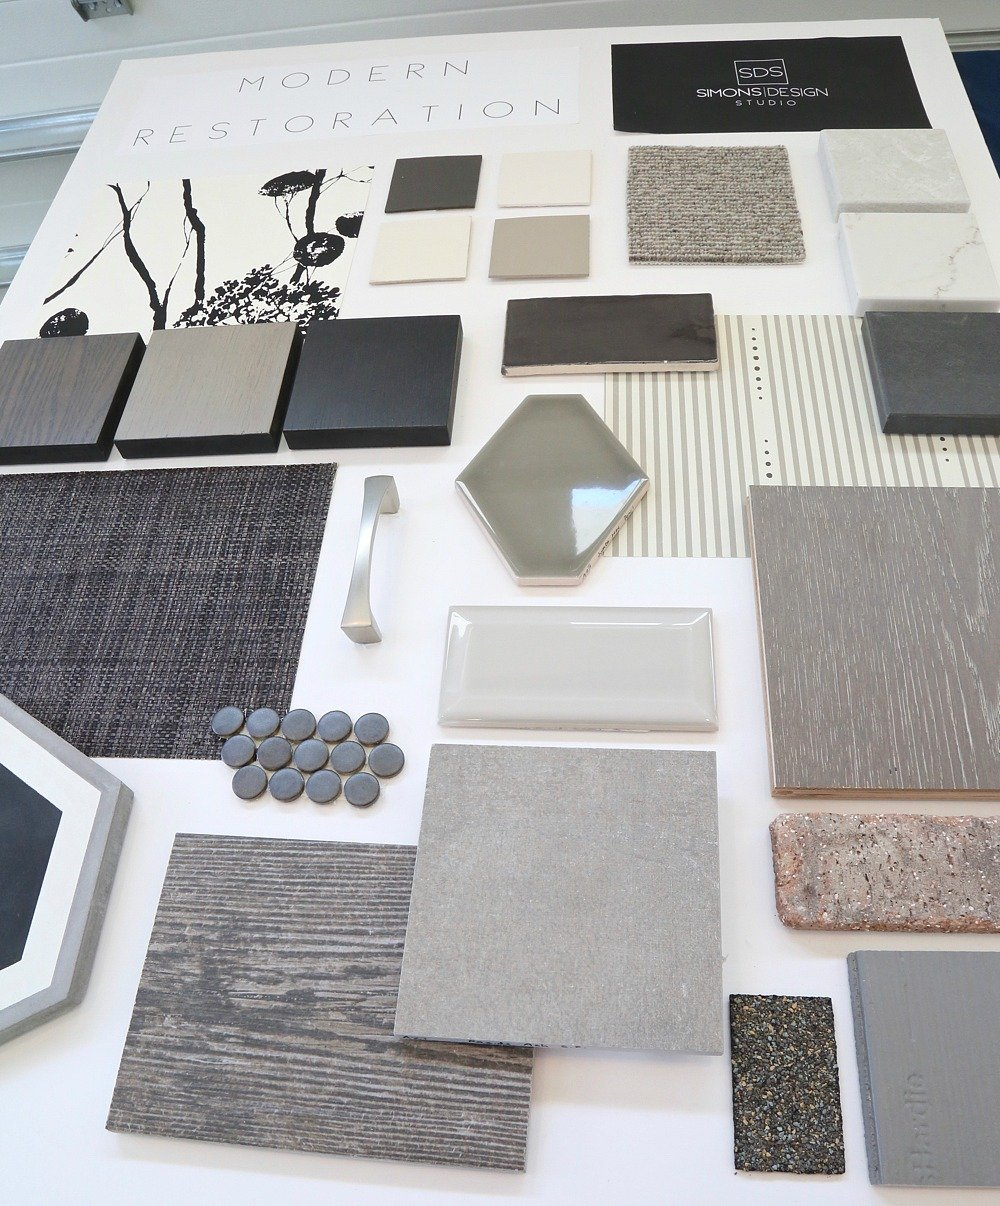 Modern design board. Simons Design Studio